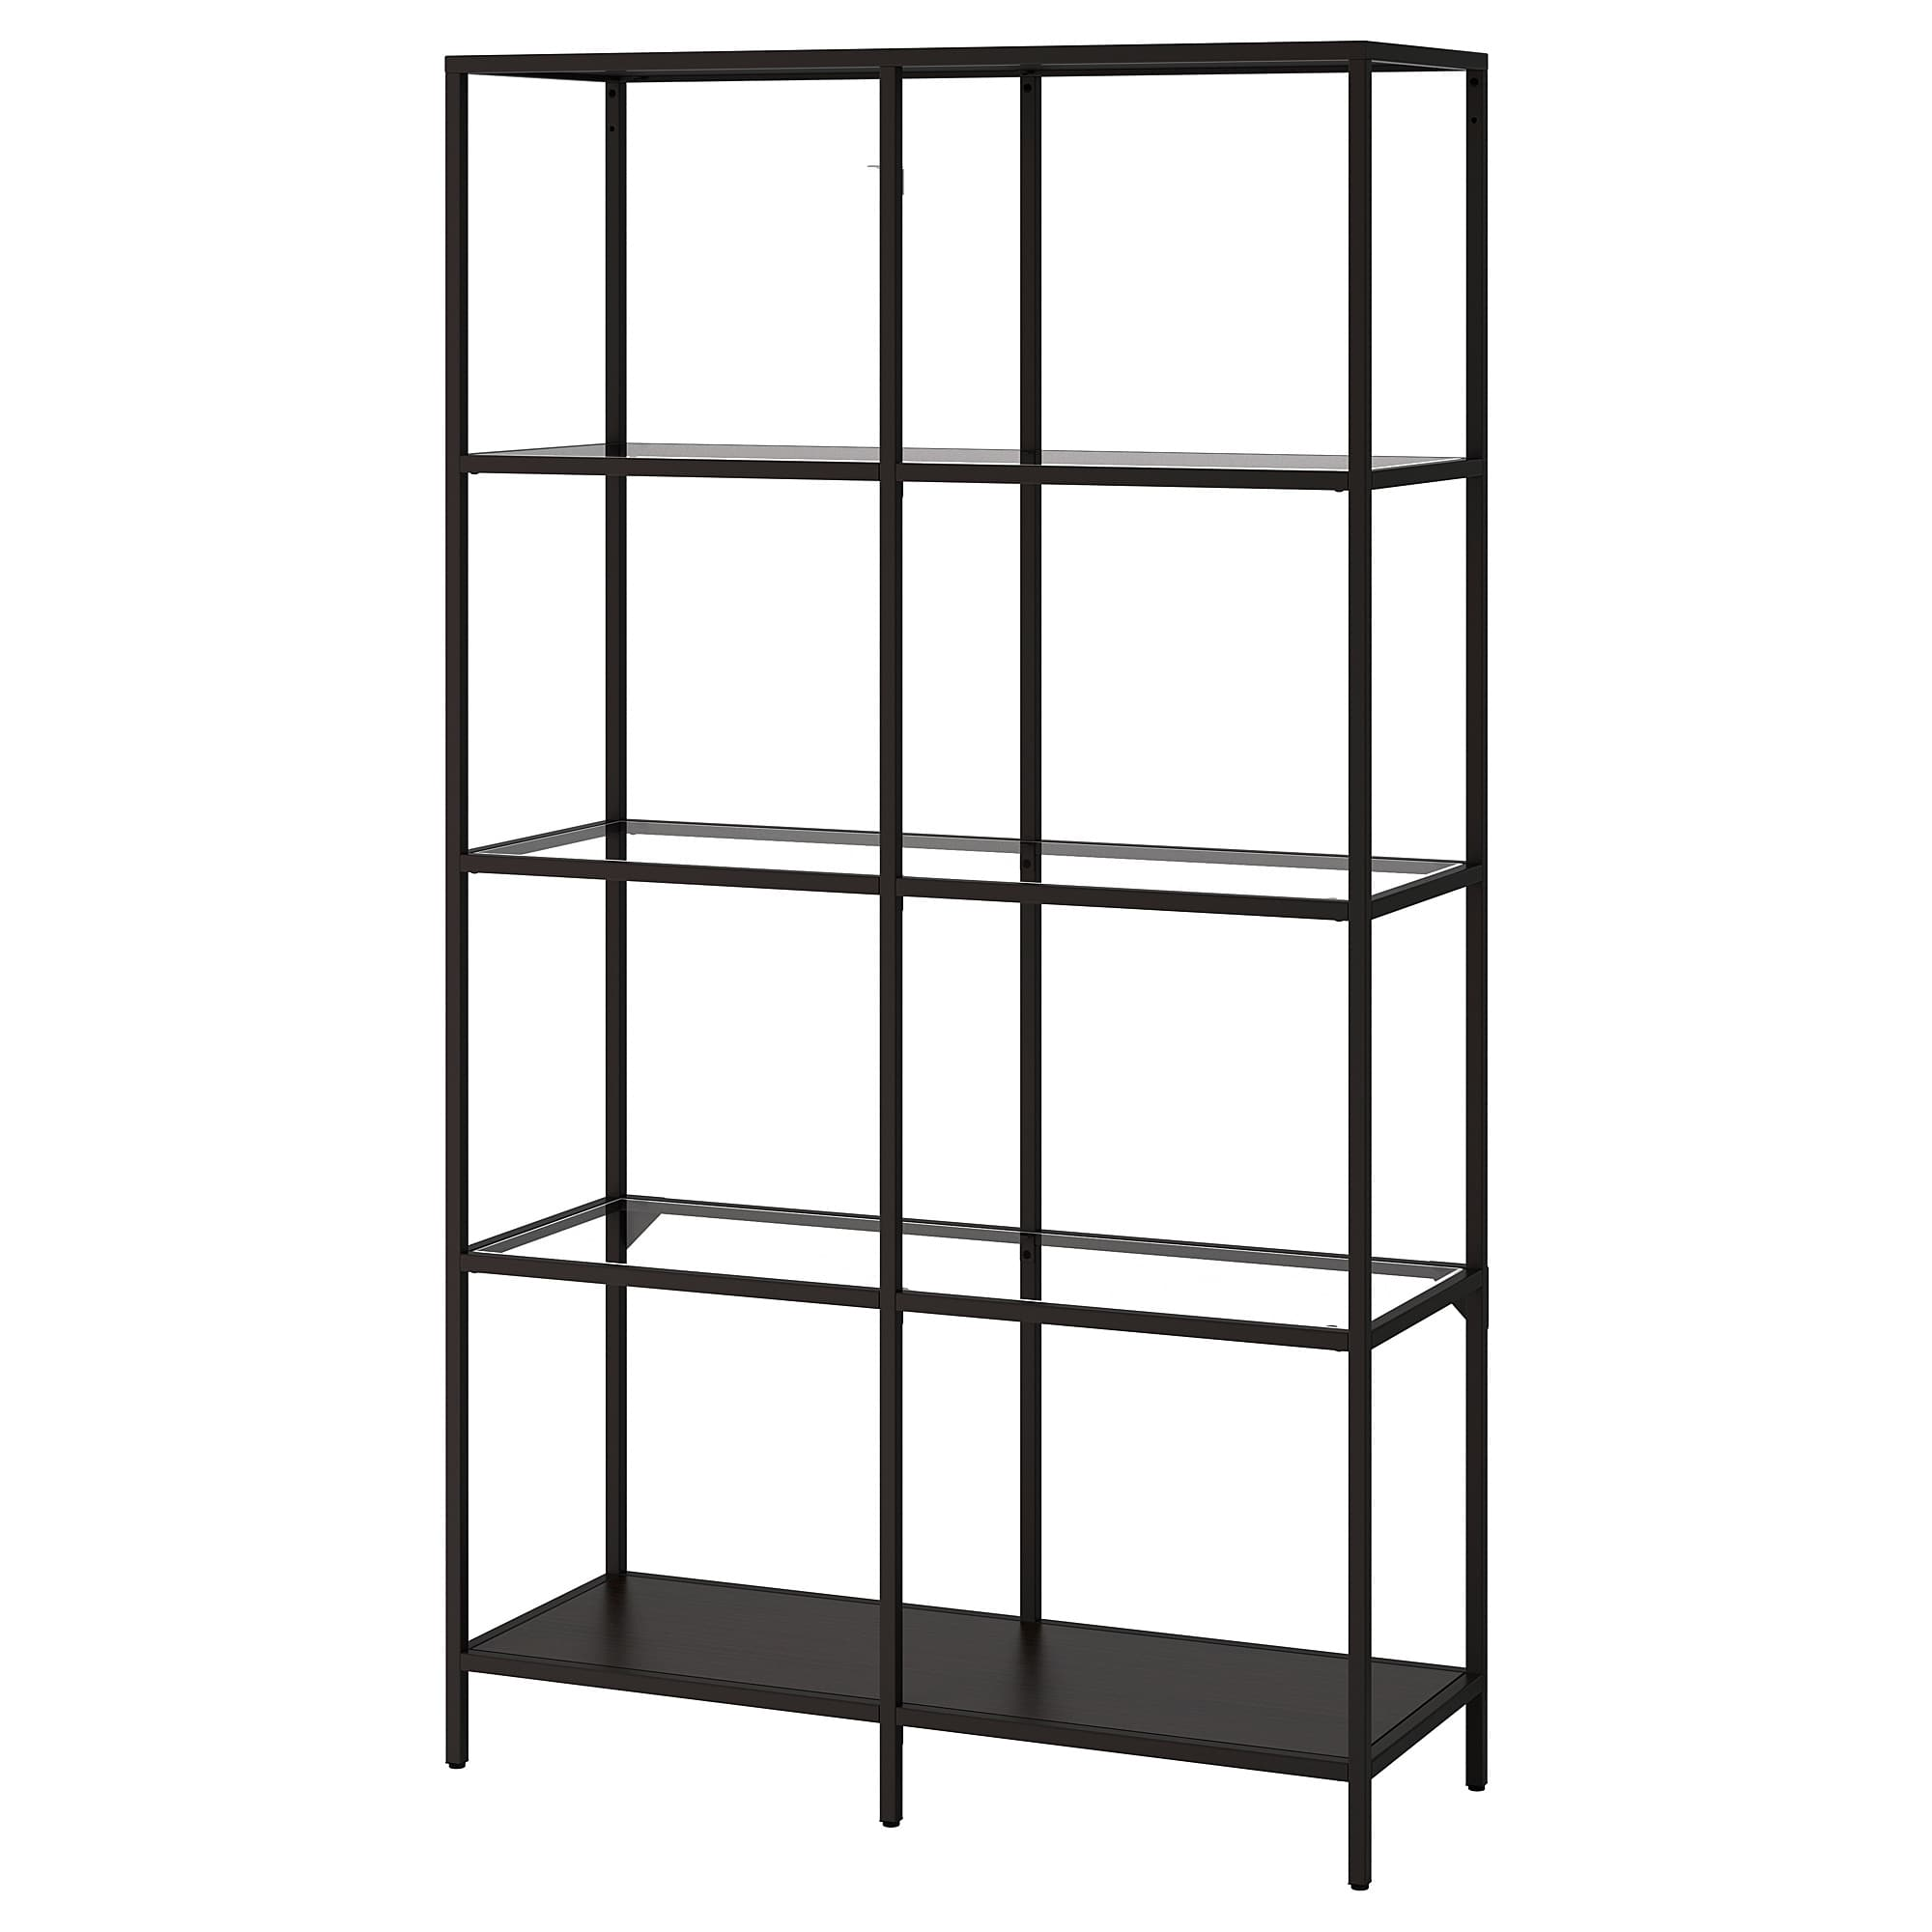 vittsjo shelf unit black brown glass ikea floating shelves family member triangle support shoe wall storage solutions mounted with hooks corner units living room display rack